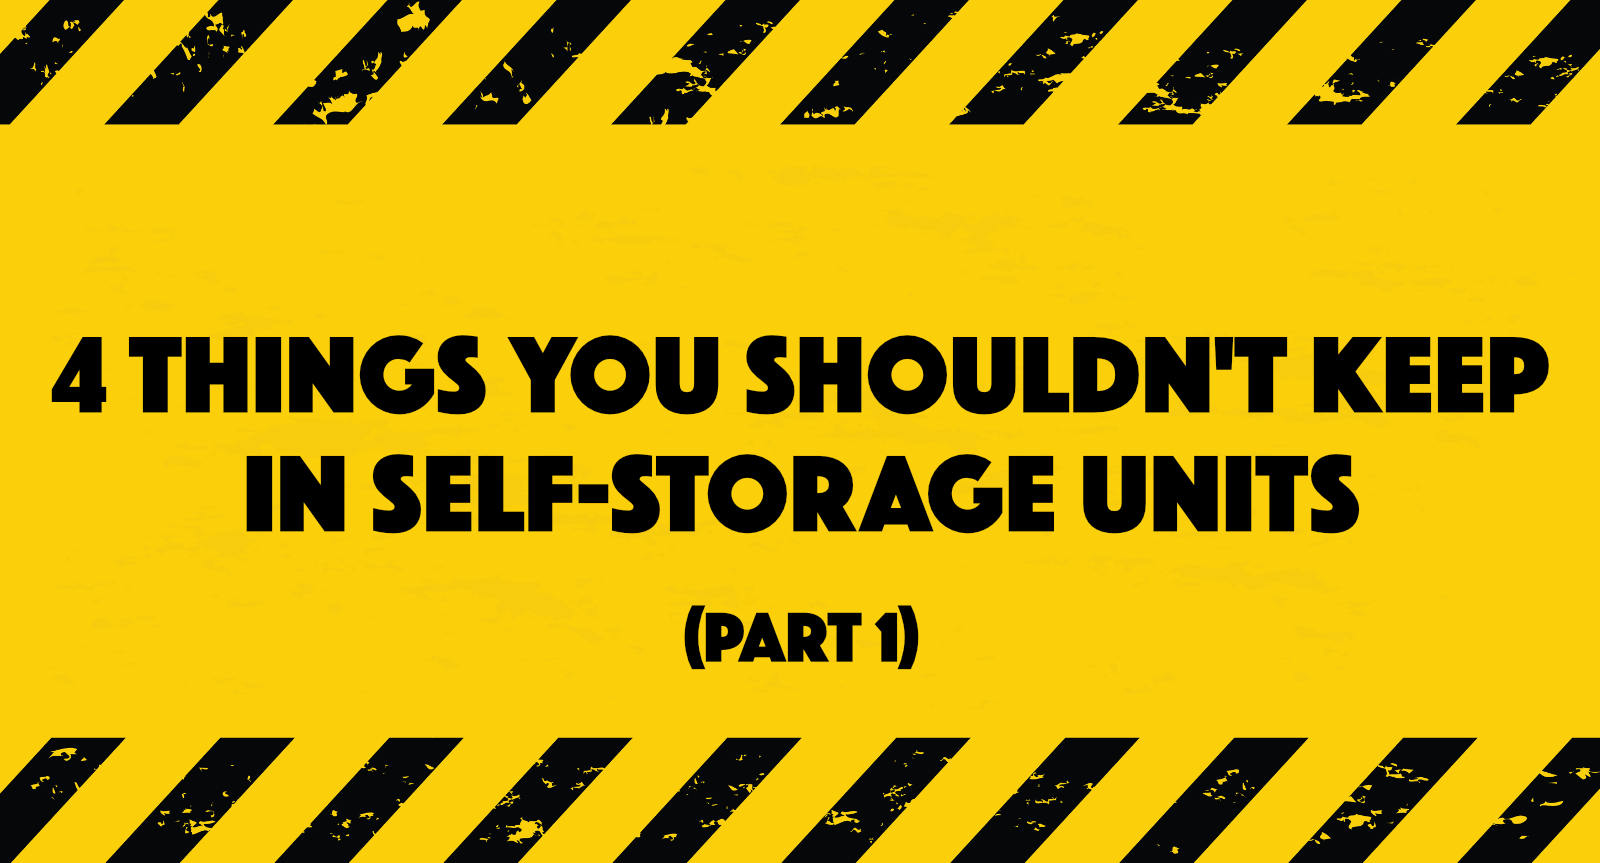 Things you shouldn't store in self storage units